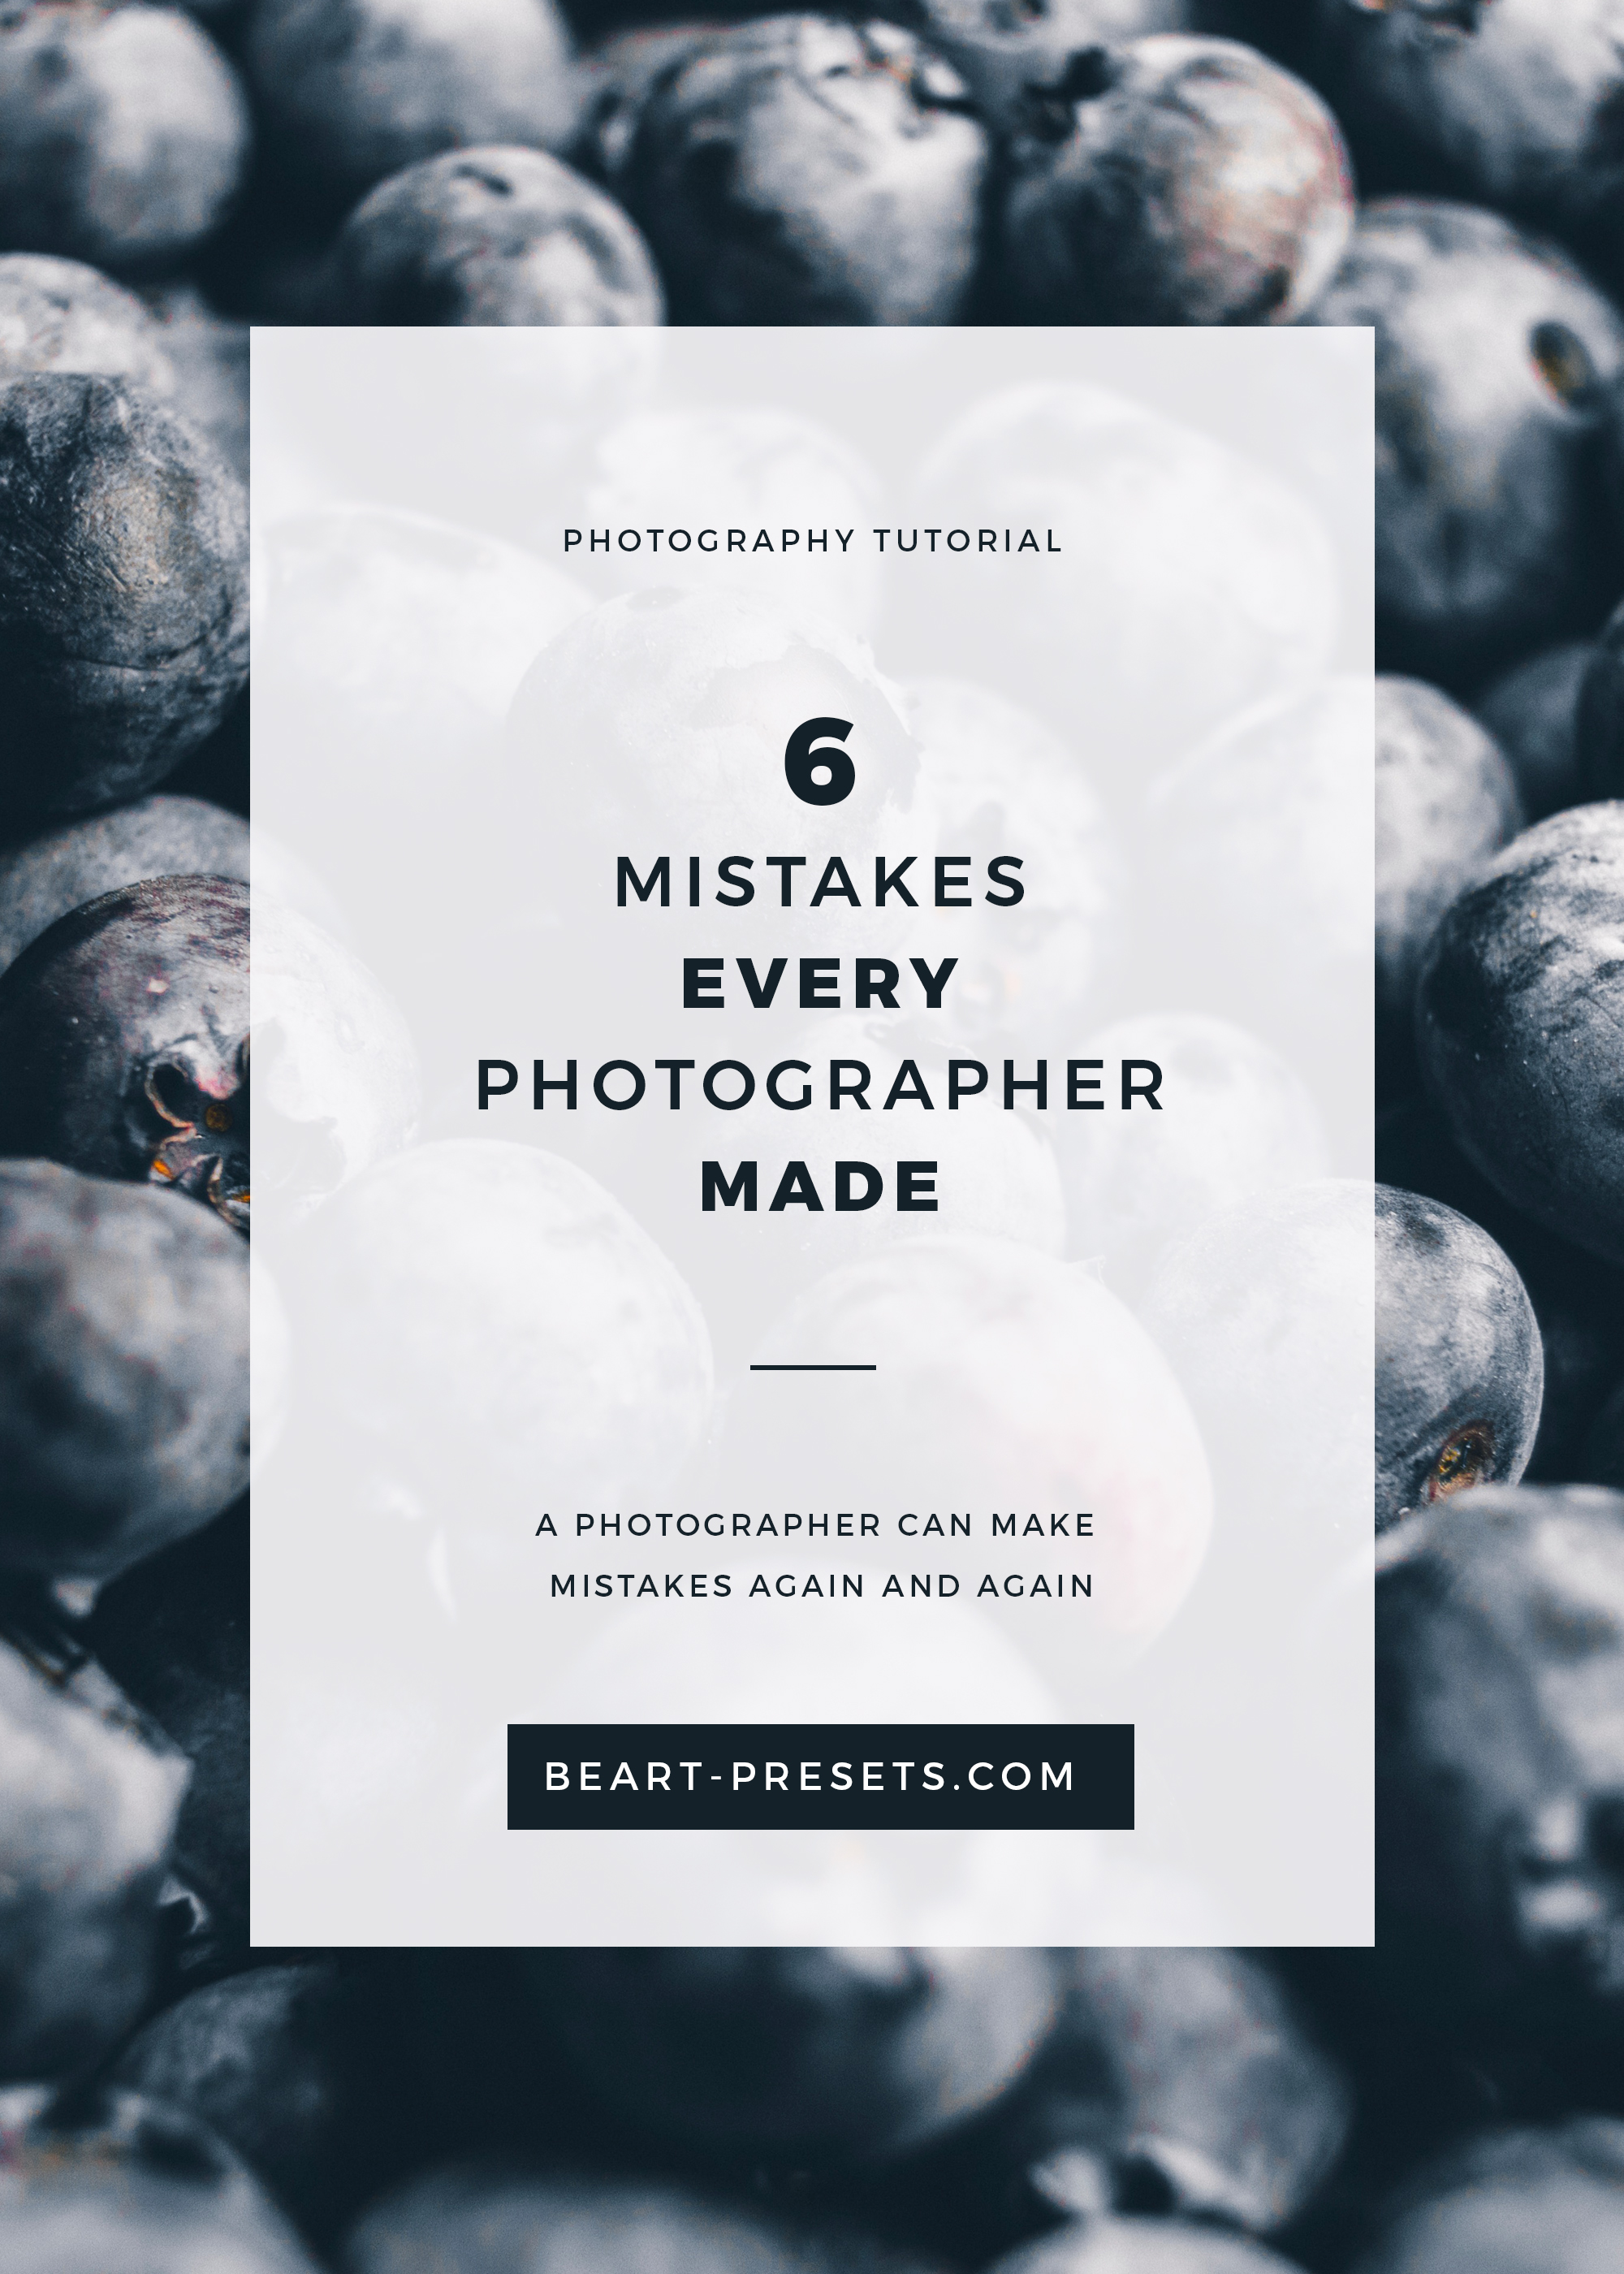 6 mistakes that every photographer made